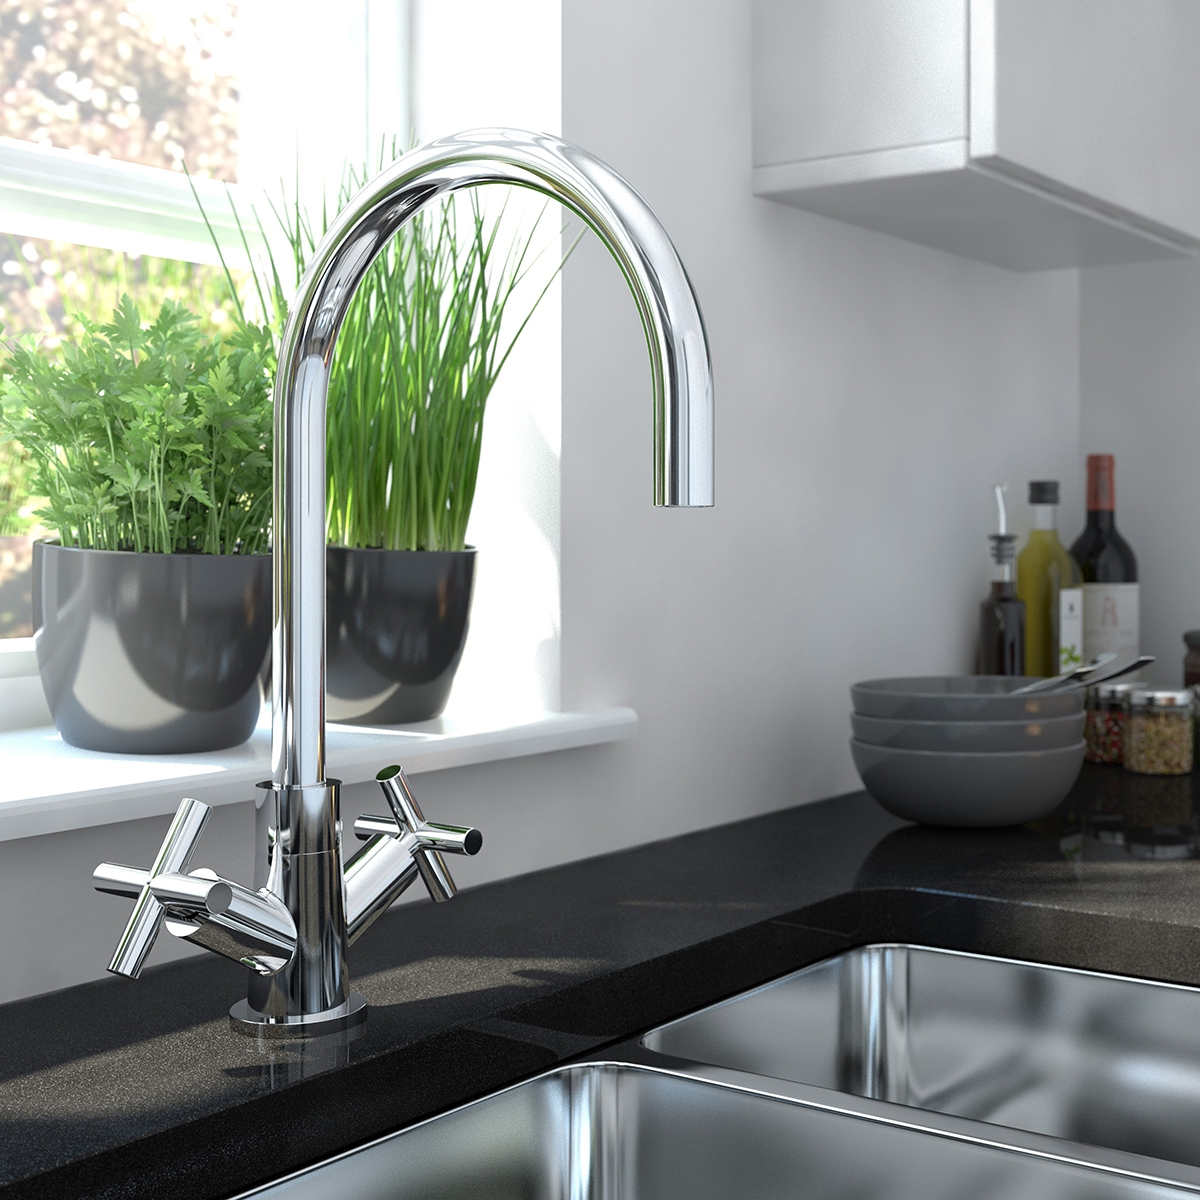 Bristan Tangerine Mono Kitchen Sink Mixer Tap Dual Handle - Chrome